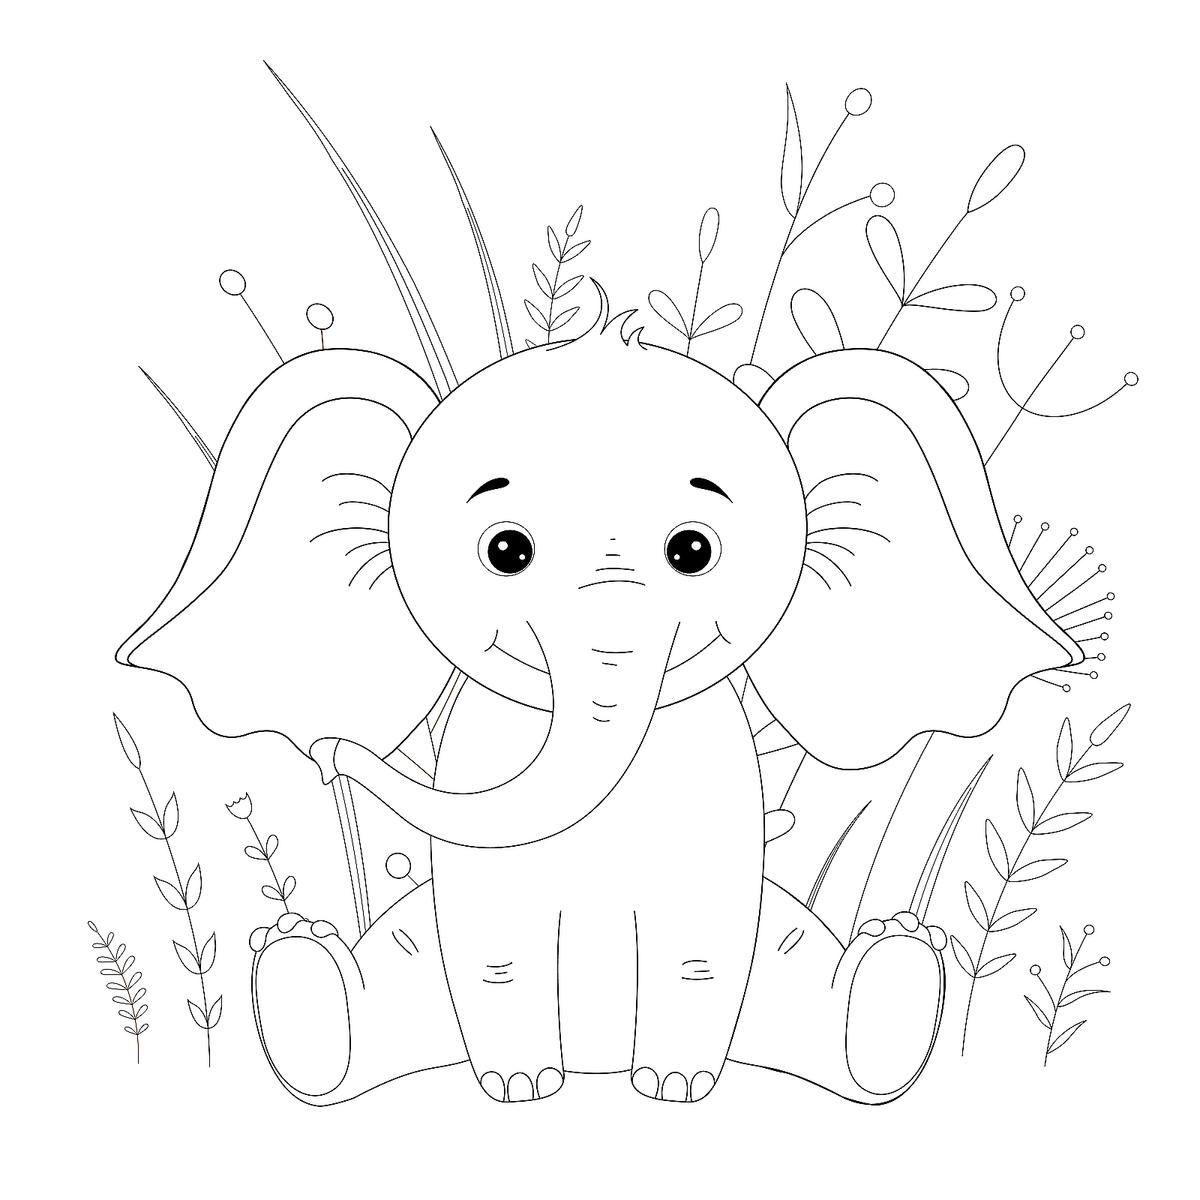 coloring pages elephants elephant coloring pages 12 free fun printable elephant elephants pages coloring